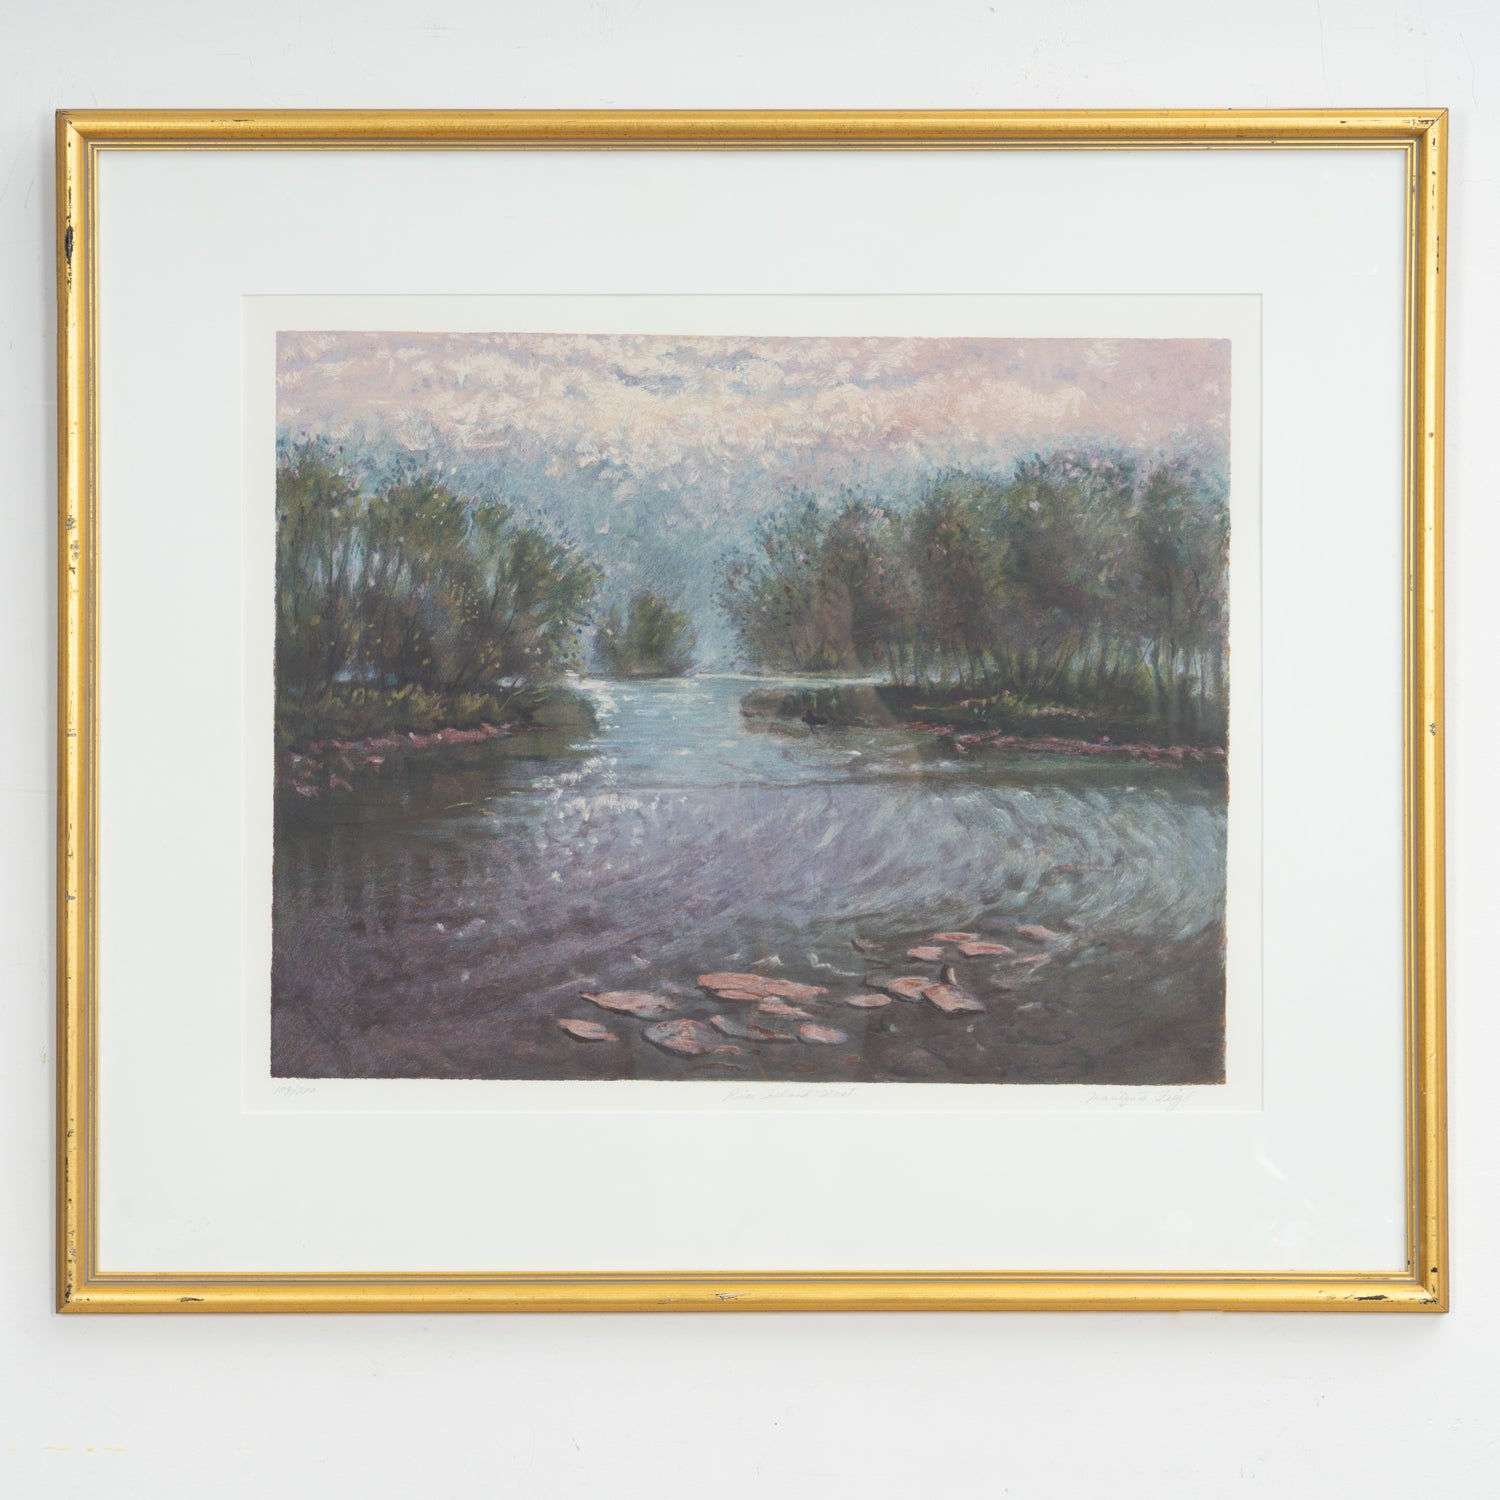 'River Island West' Serigraph by Marilyn Feigl '94